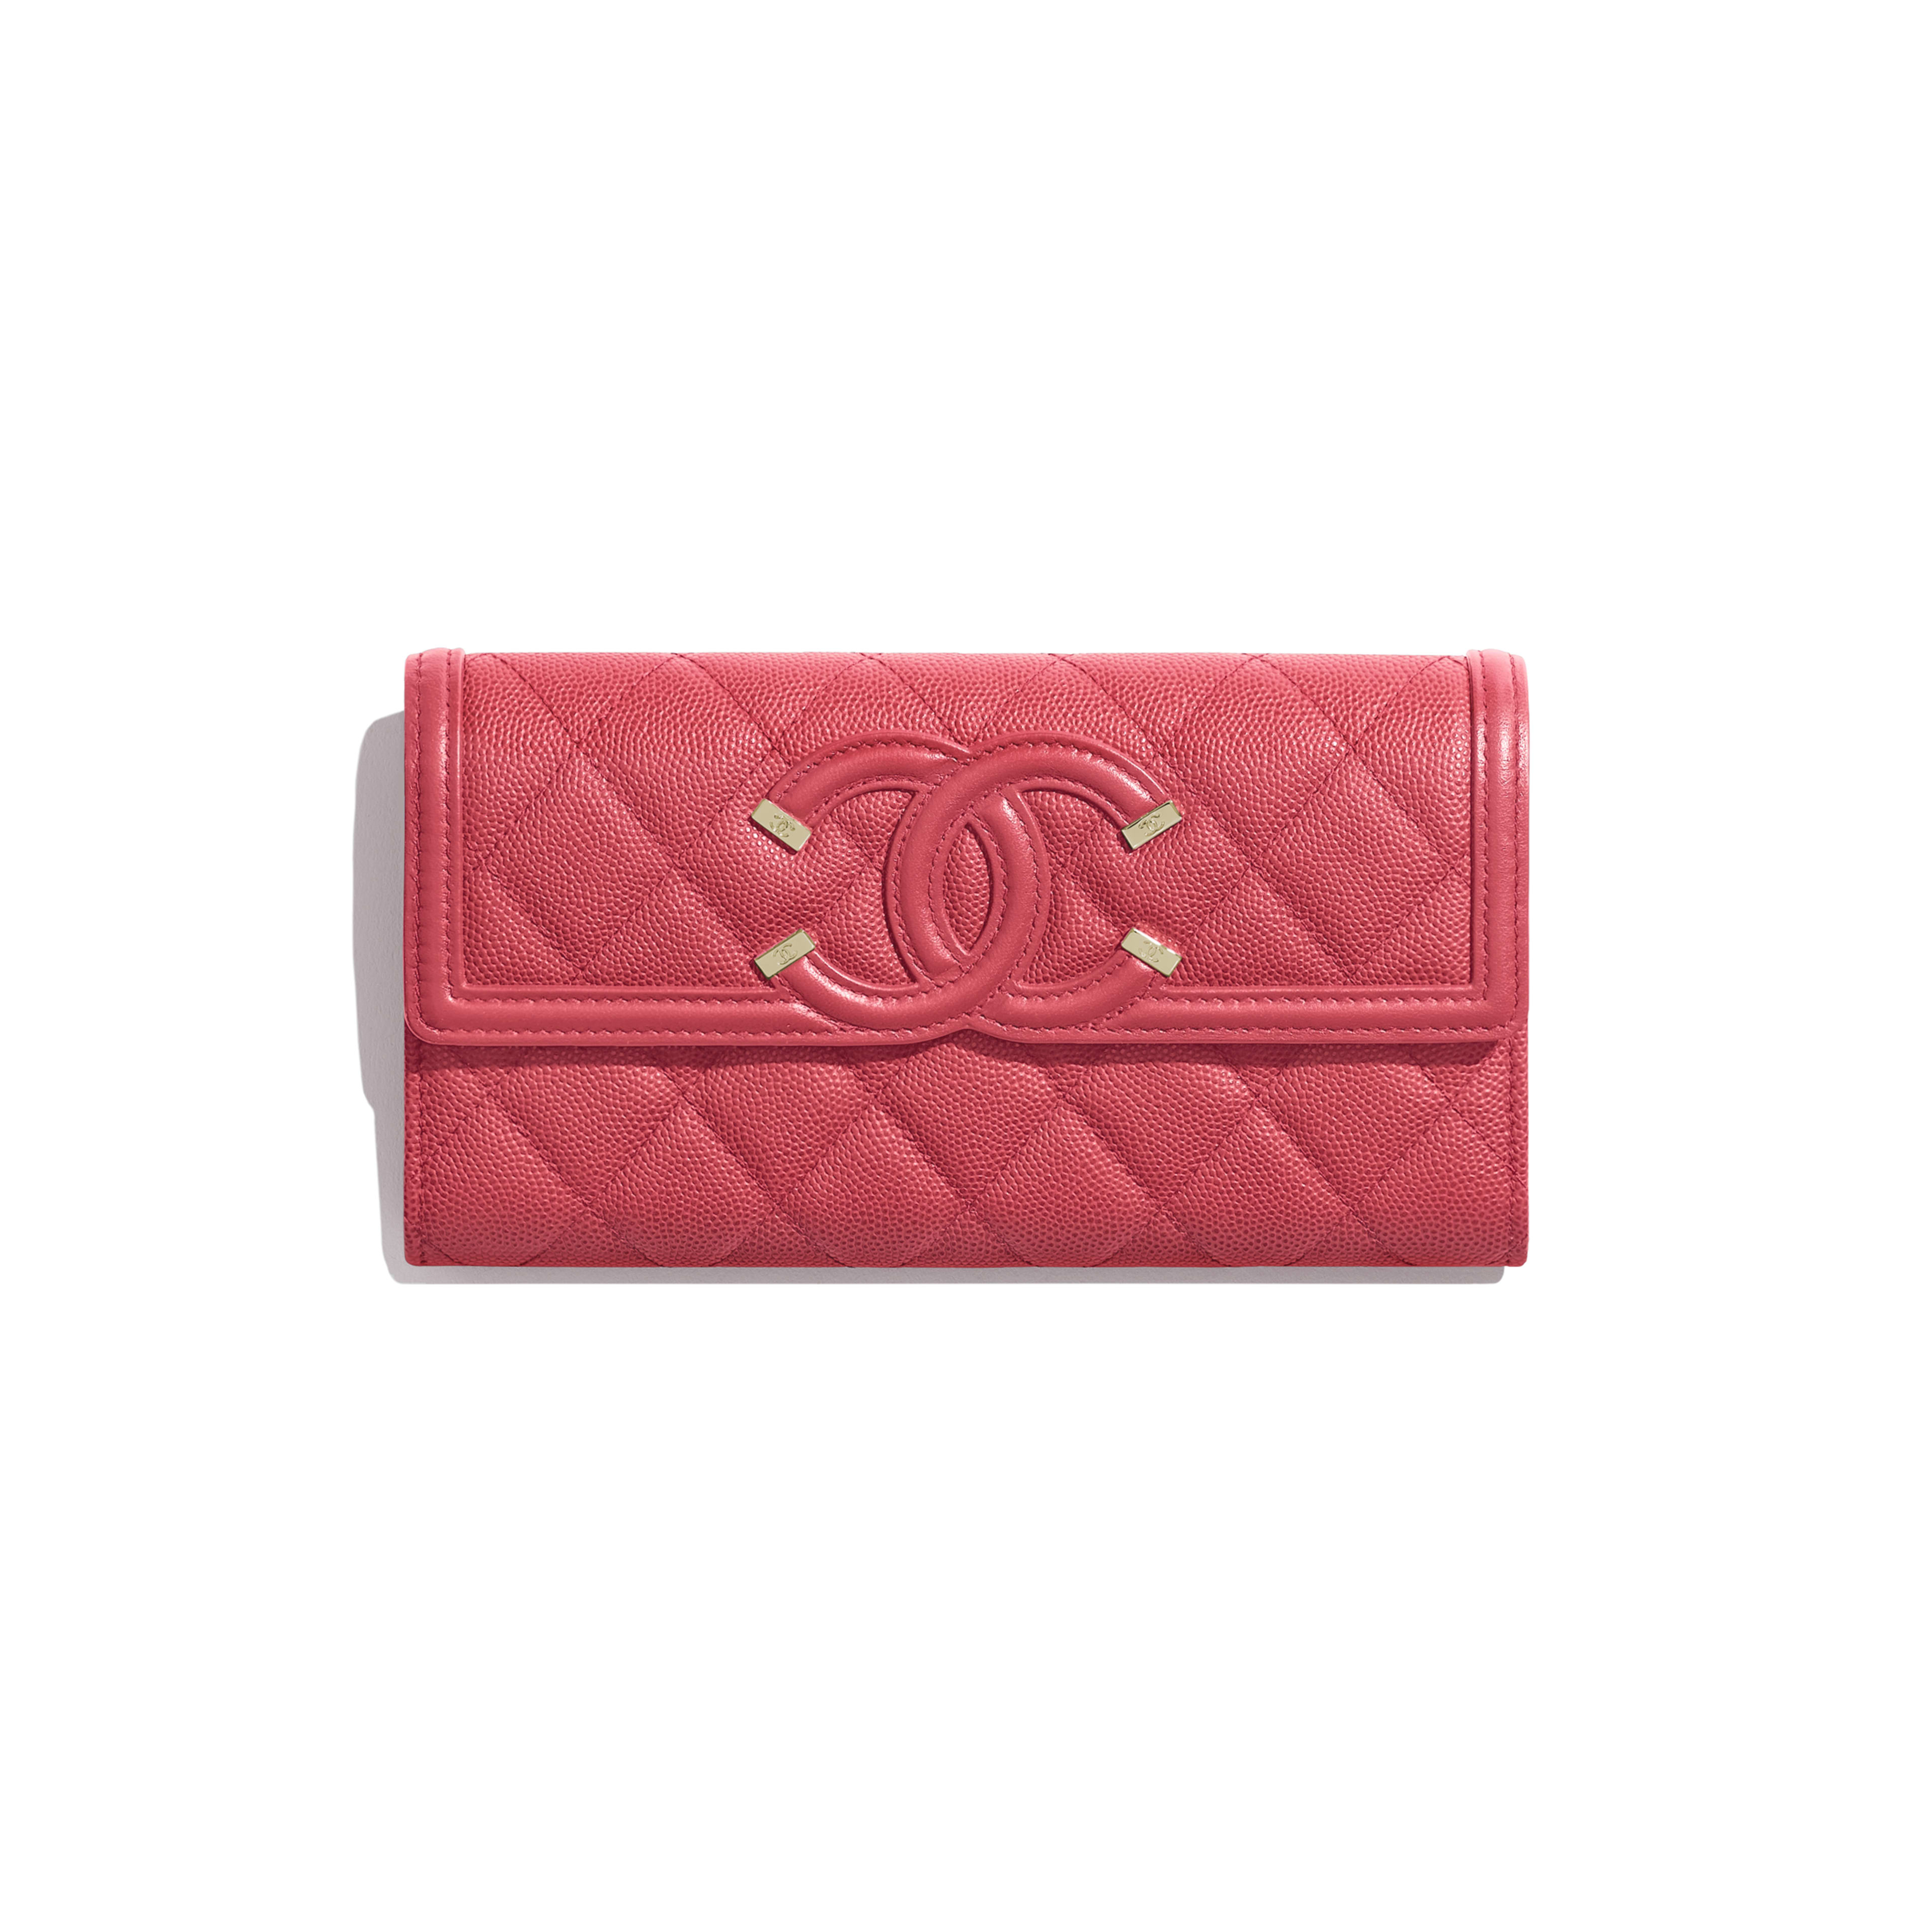 Long Flap Wallet - Pink - Grained Calfskin & Gold-Tone Metal - Default view - see full sized version